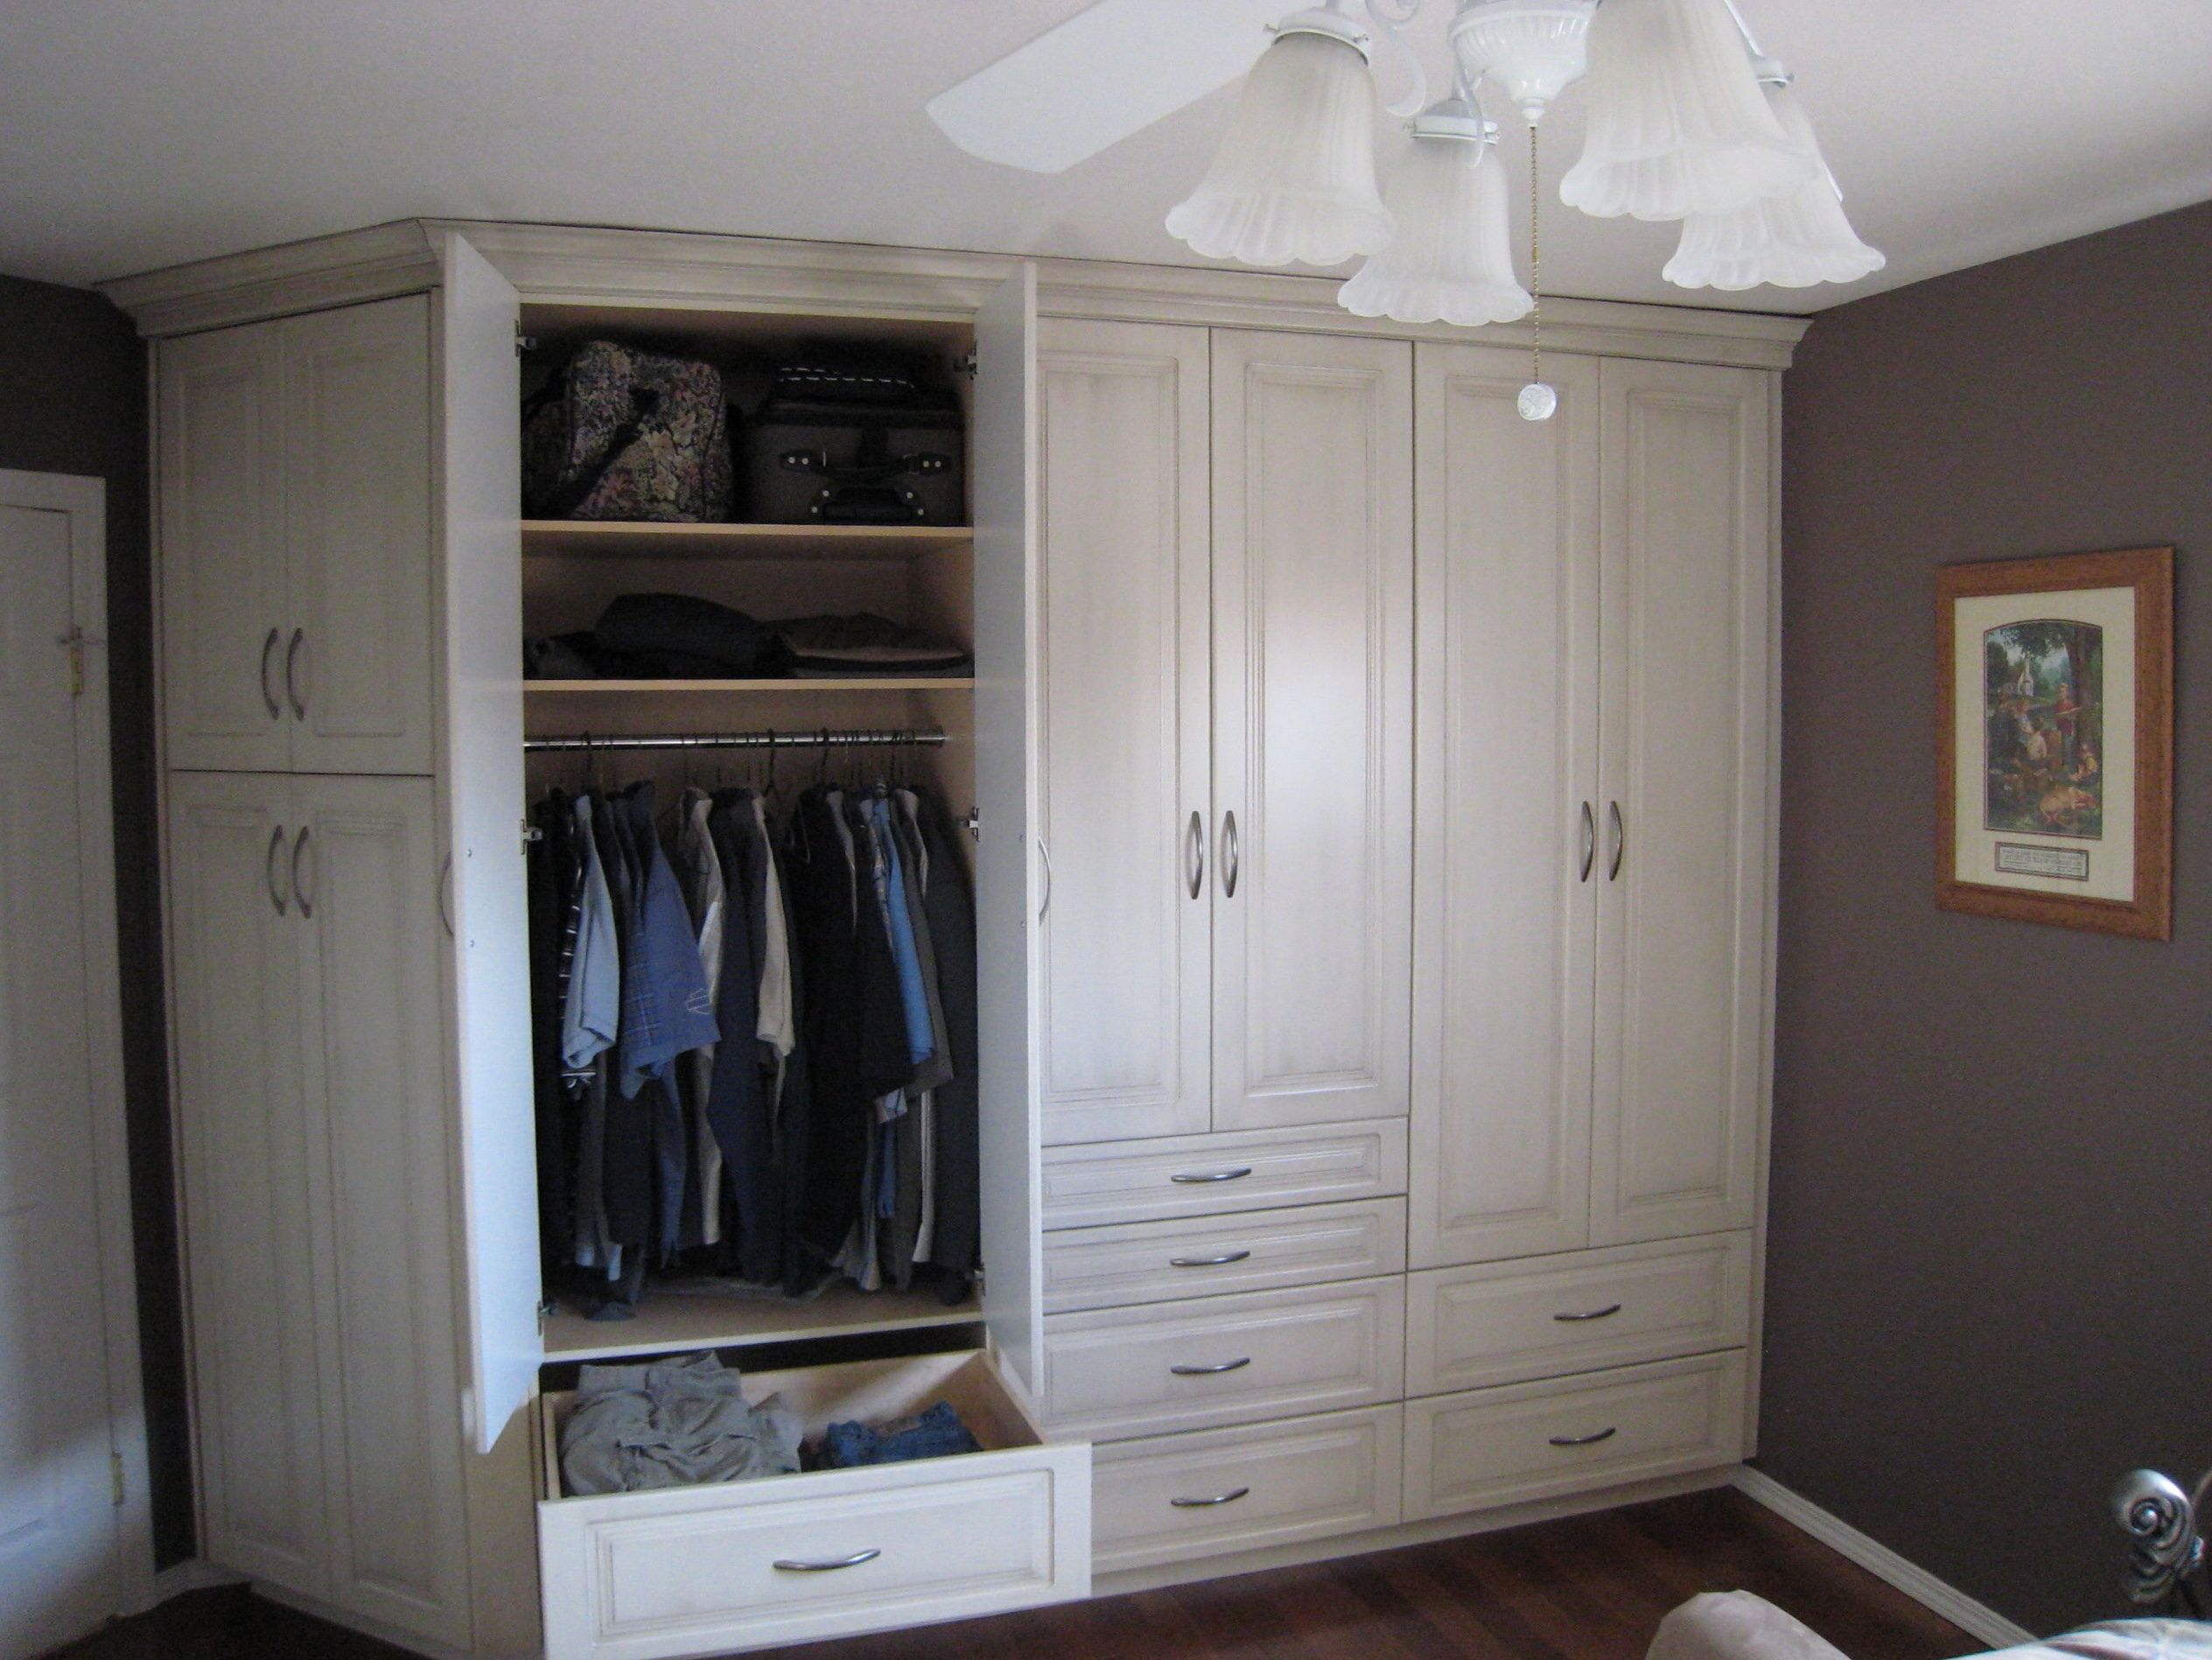 Built In Closets In Bedroom | bedroom | Pinterest | Bedrooms, Barn ...